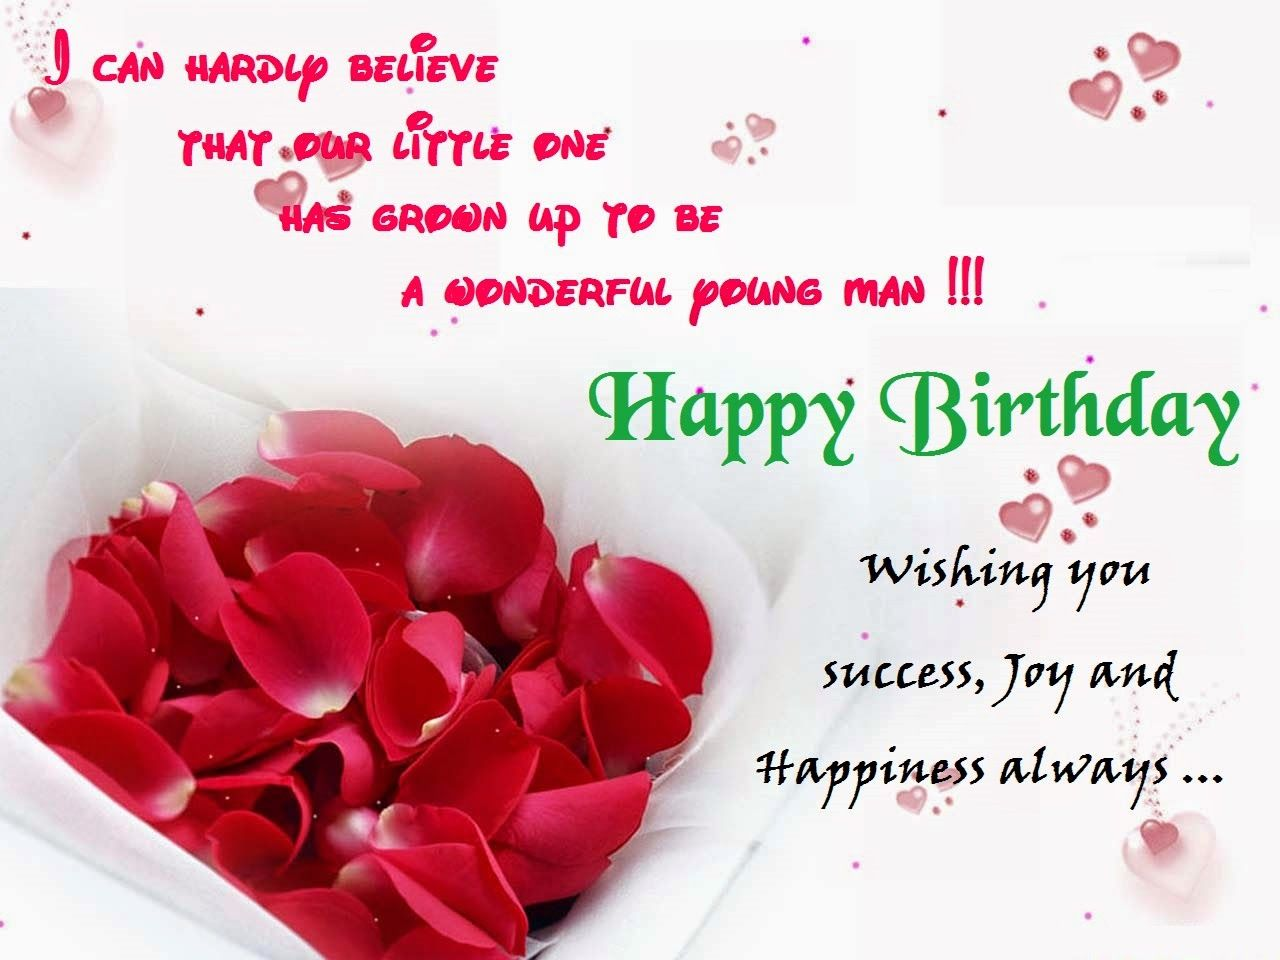 Happy Birthday Cards Images For Friends With Quotes Happy Birthday